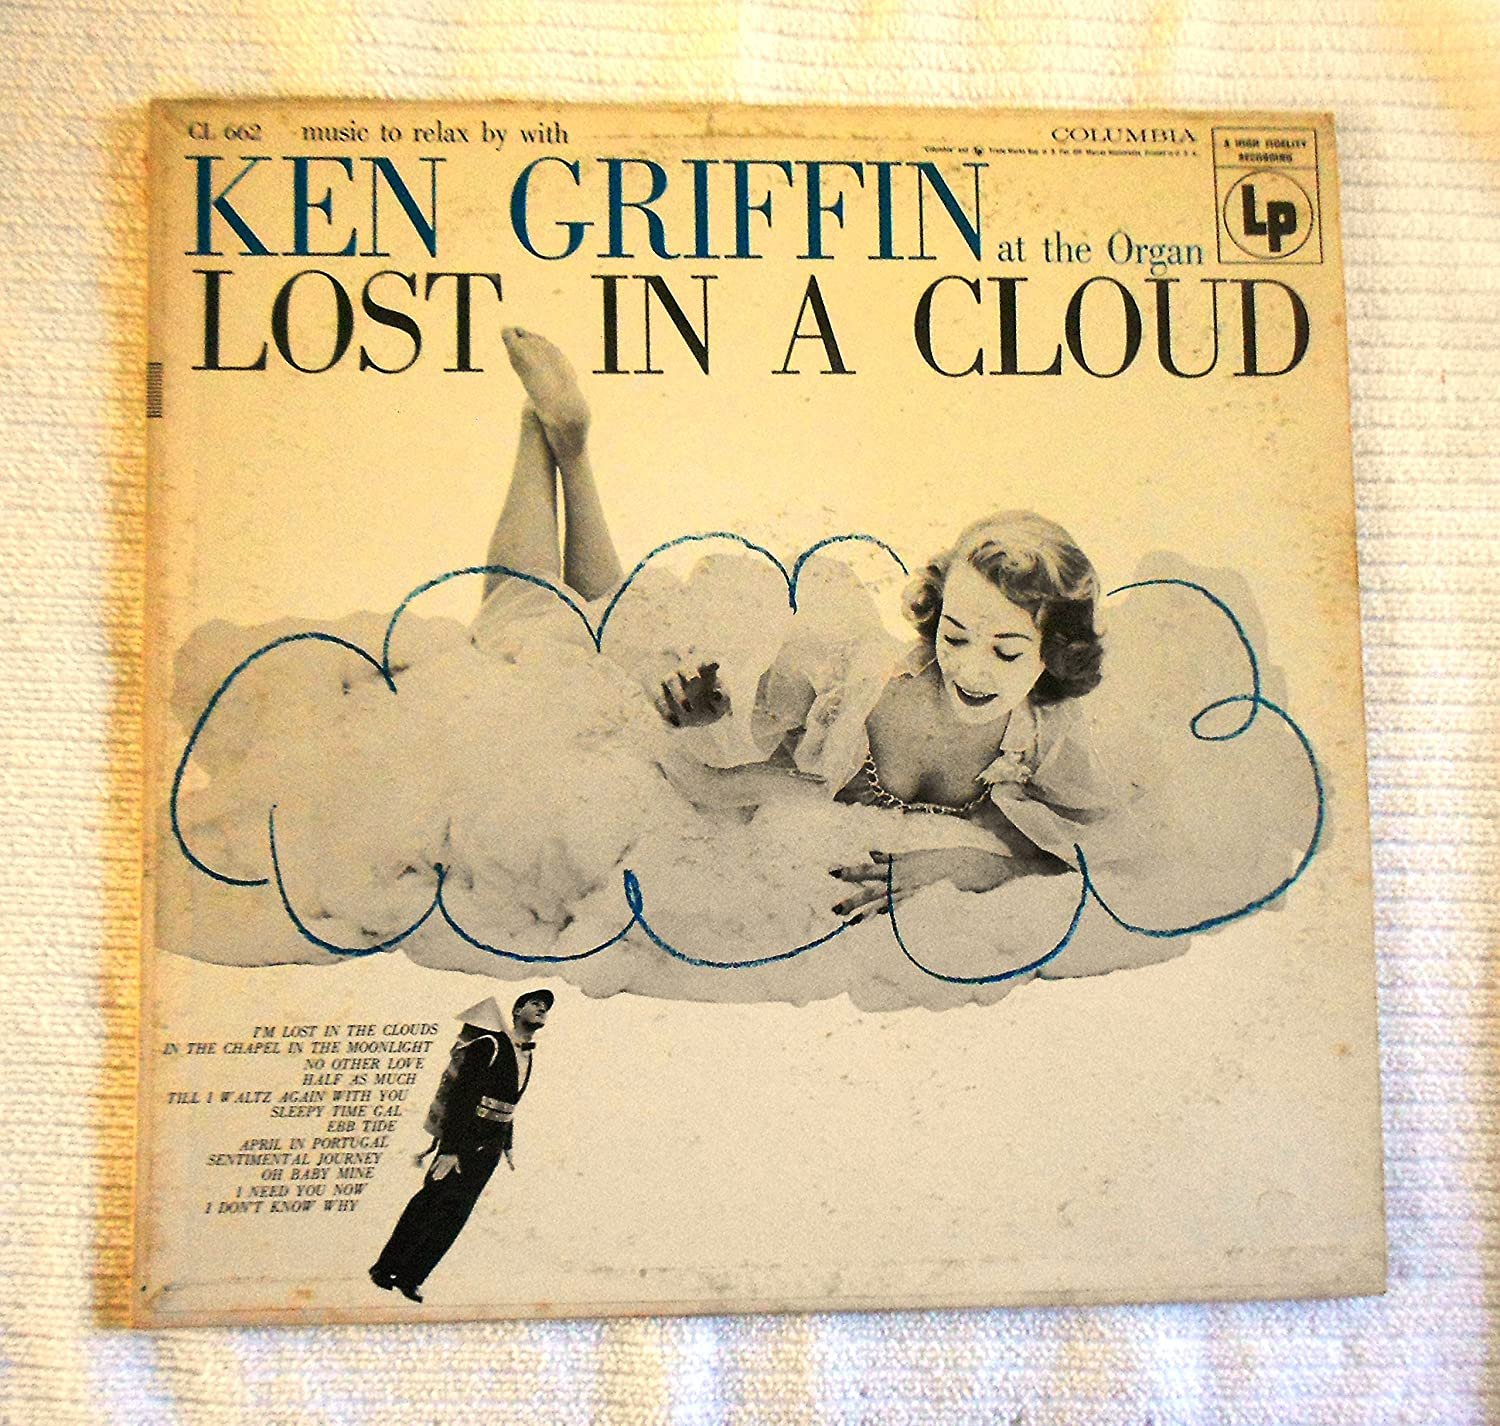 Ken Griffin - Music to Relax By: Lost in a Cloud - Amazon